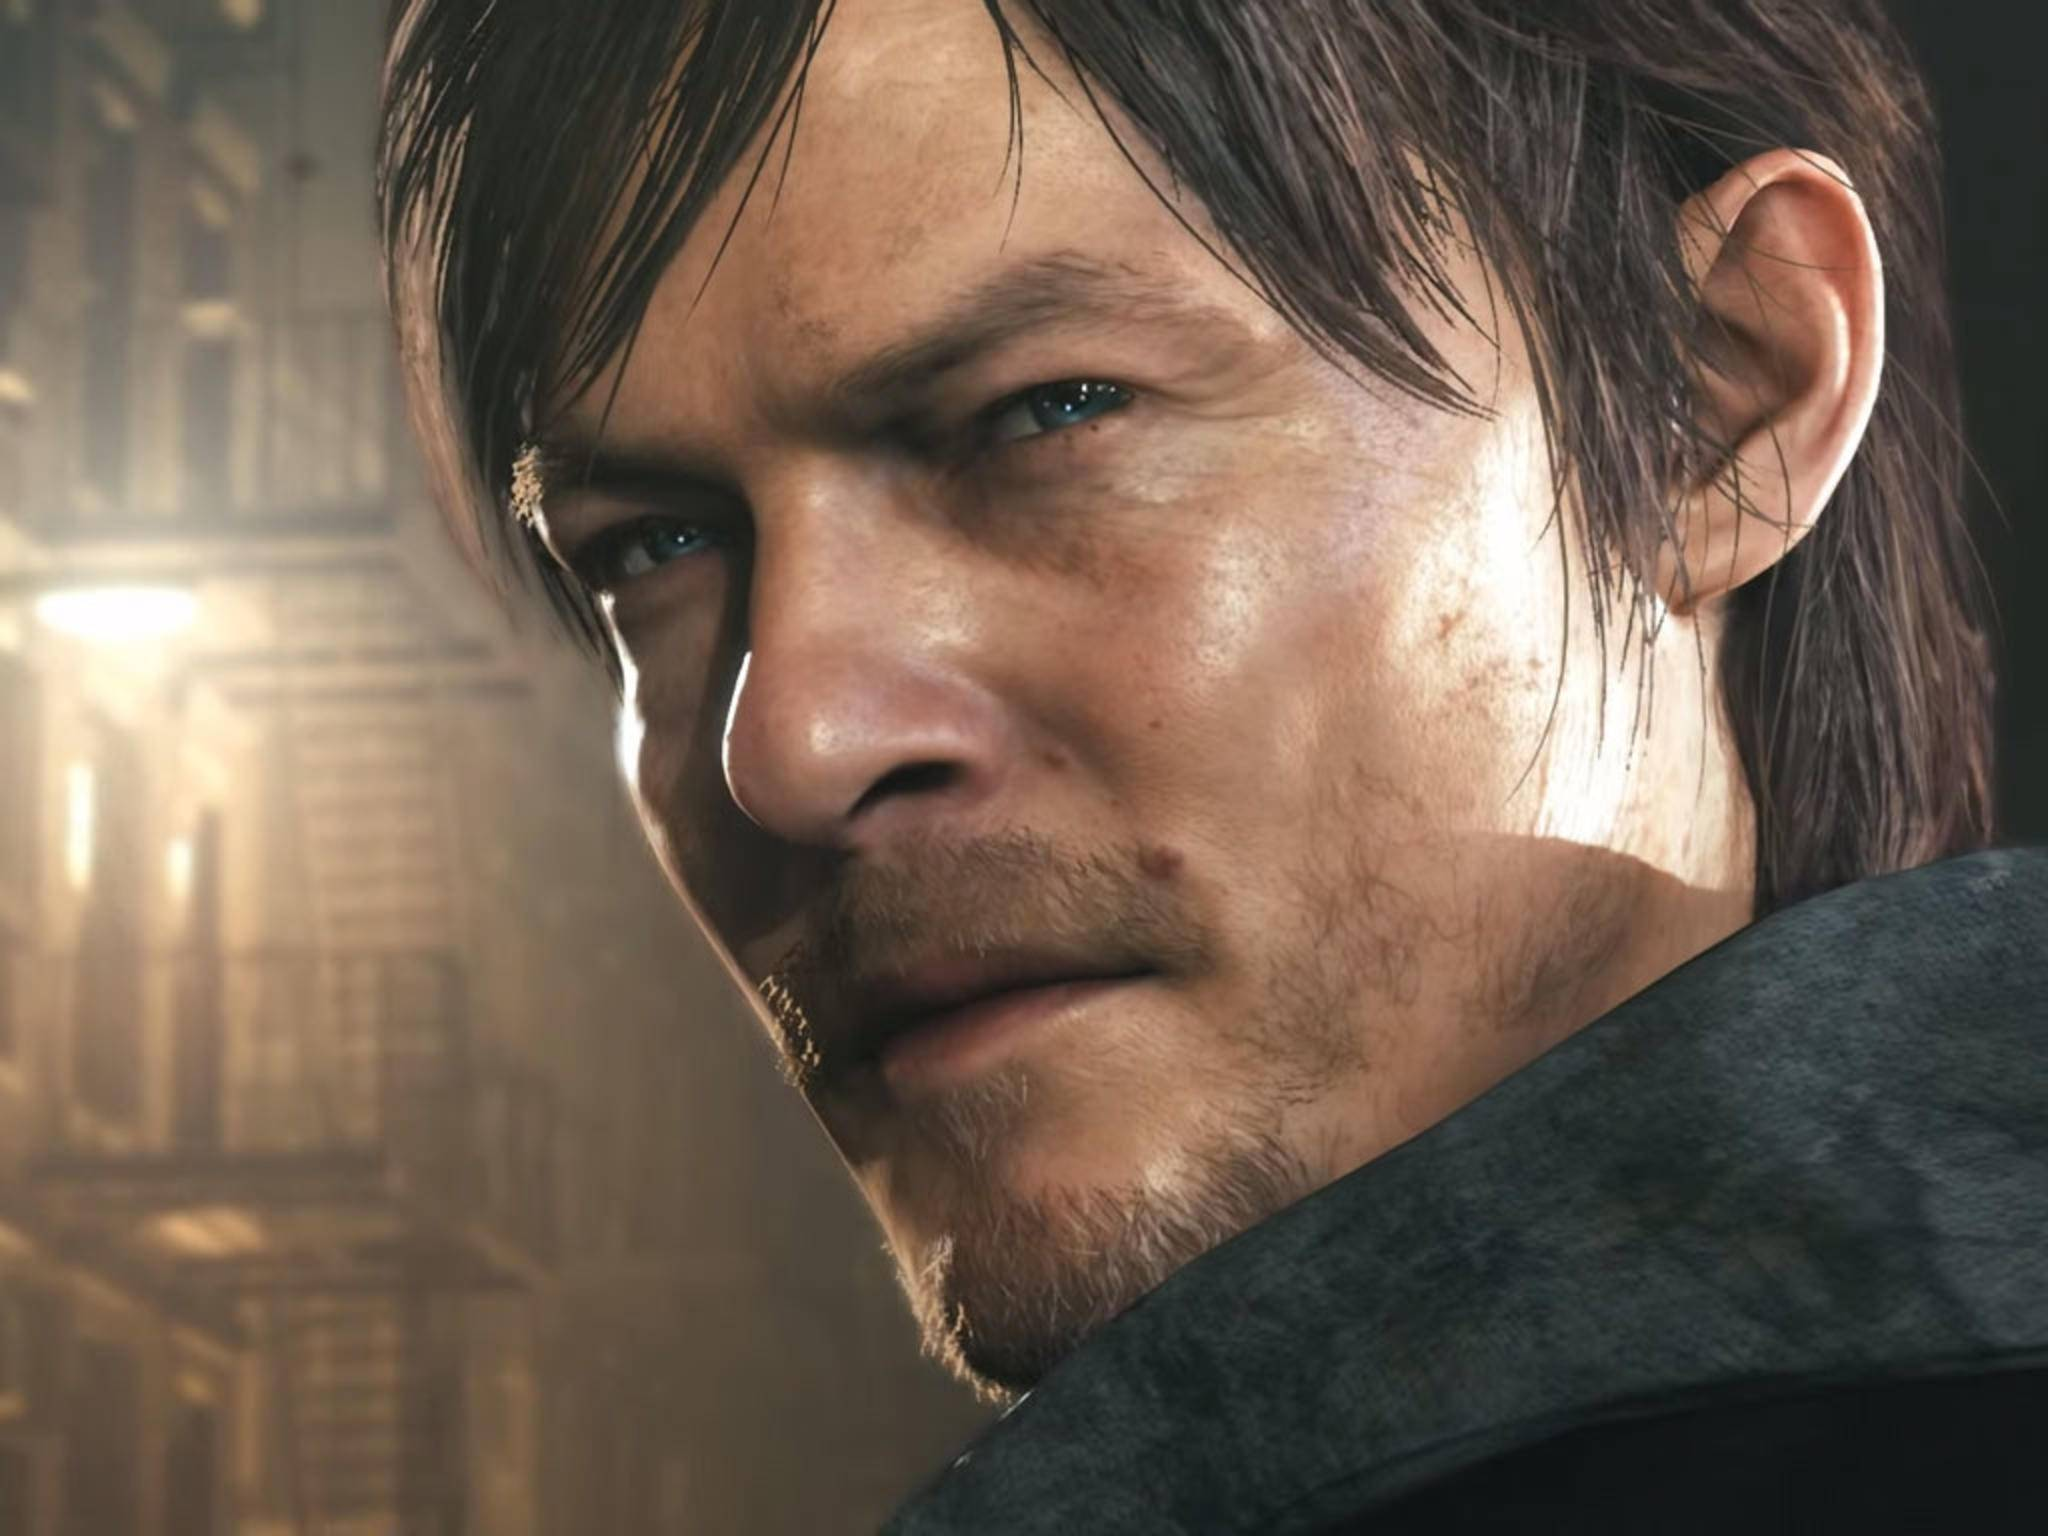 Walking-Dead-Star Norman Reedus sollte der Held in Silent Hills werden.